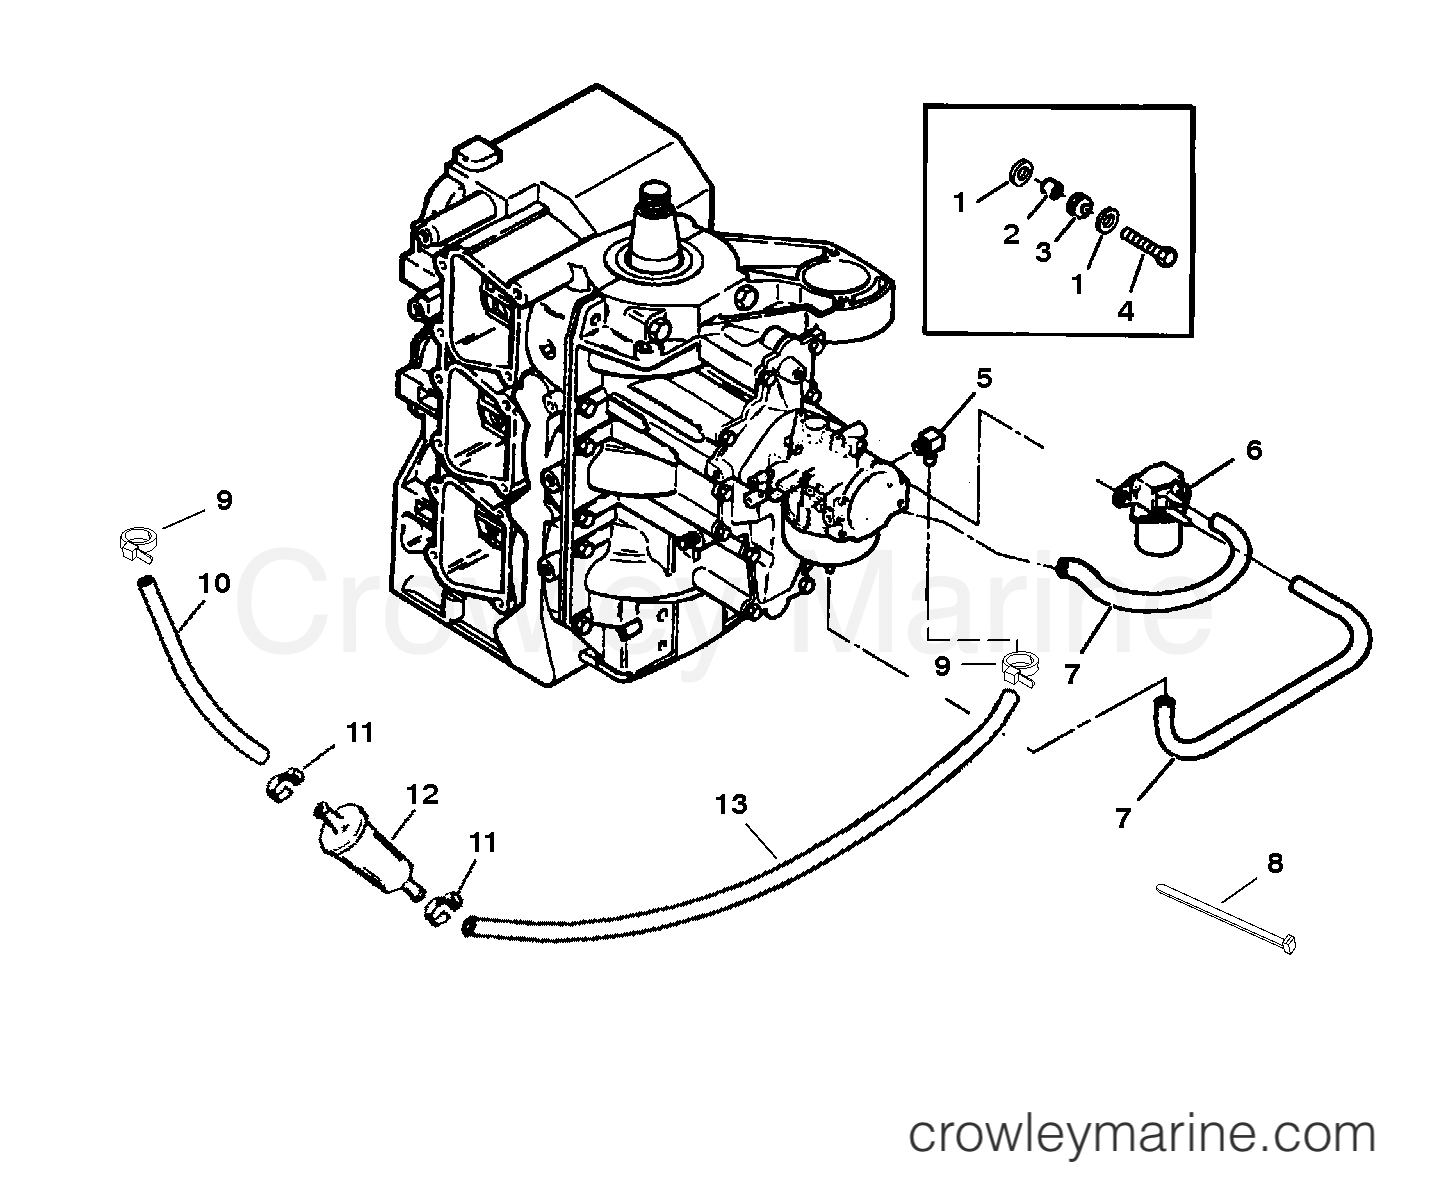 Fuel Filter And Prime System 1996 Force Outboard 75 H075412sd Elpt Crowley Marine